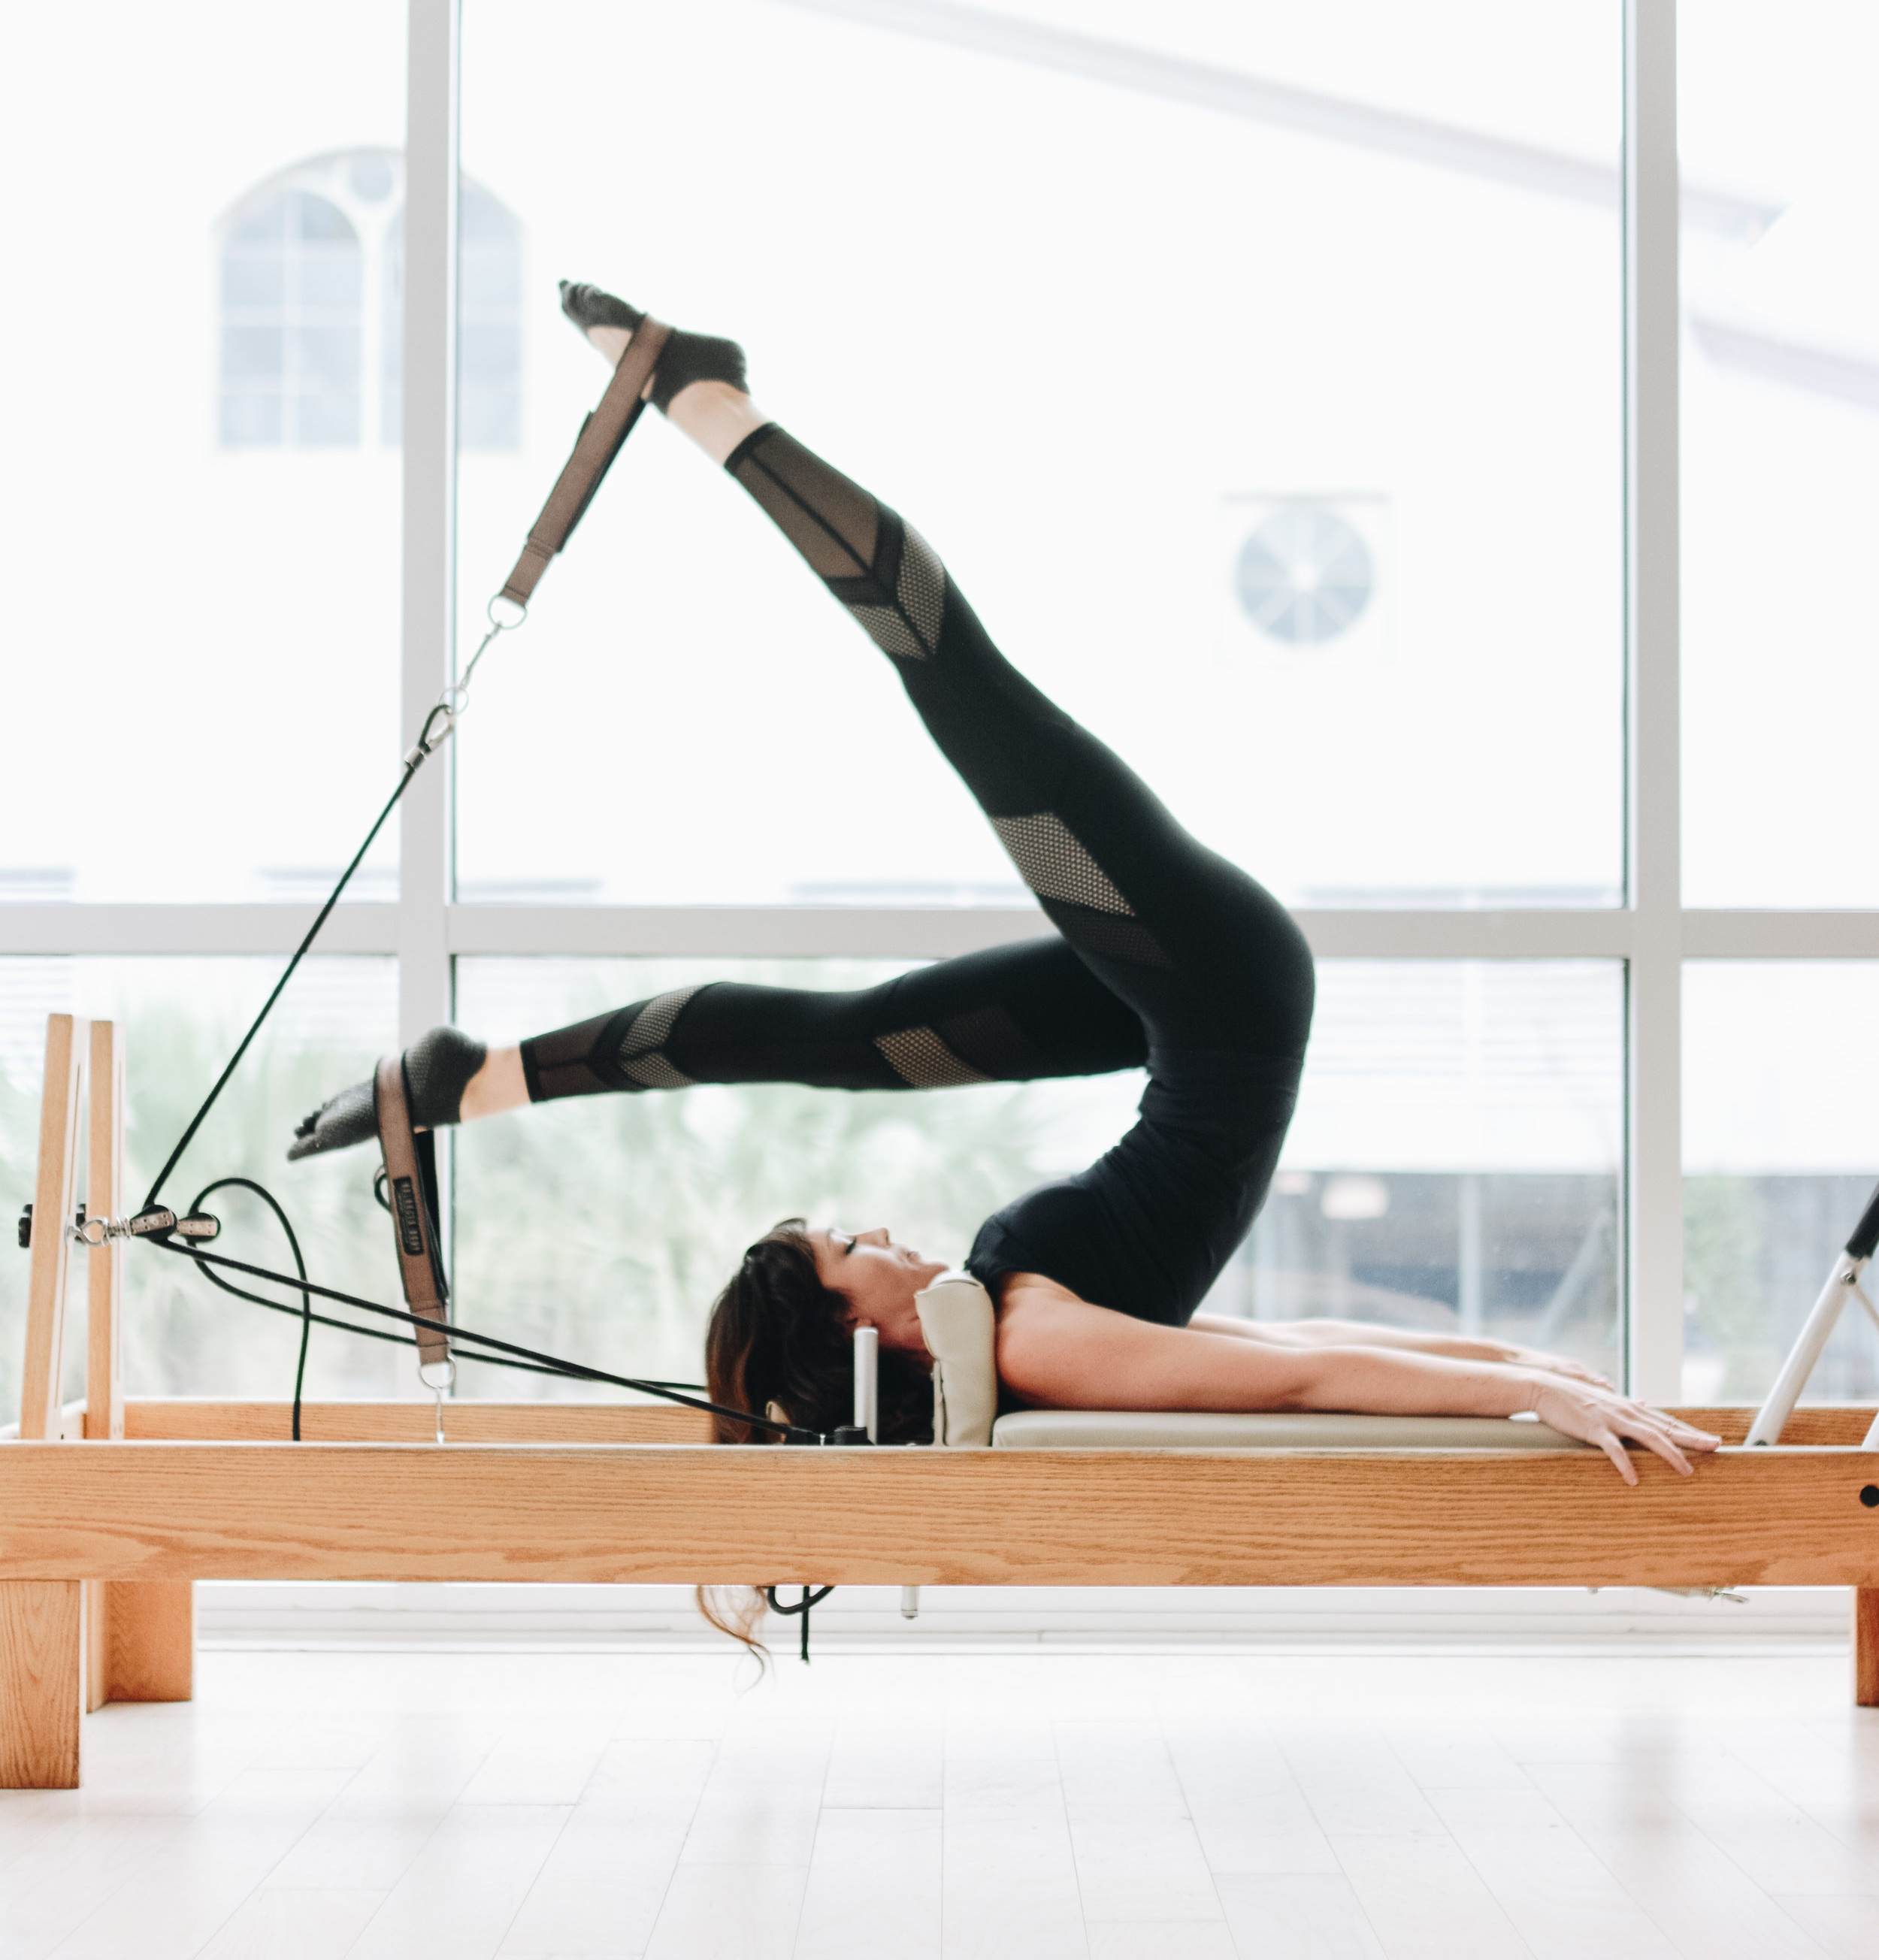 PILATES - Reformer and mat pilates classes are available for beginner, intermediate, advanced. Each exercise emphasizes breath, core conditioning, and body awareness this full-body workout will strengthen your deepest abdominal muscles while sculpting your legs, arms, and back.